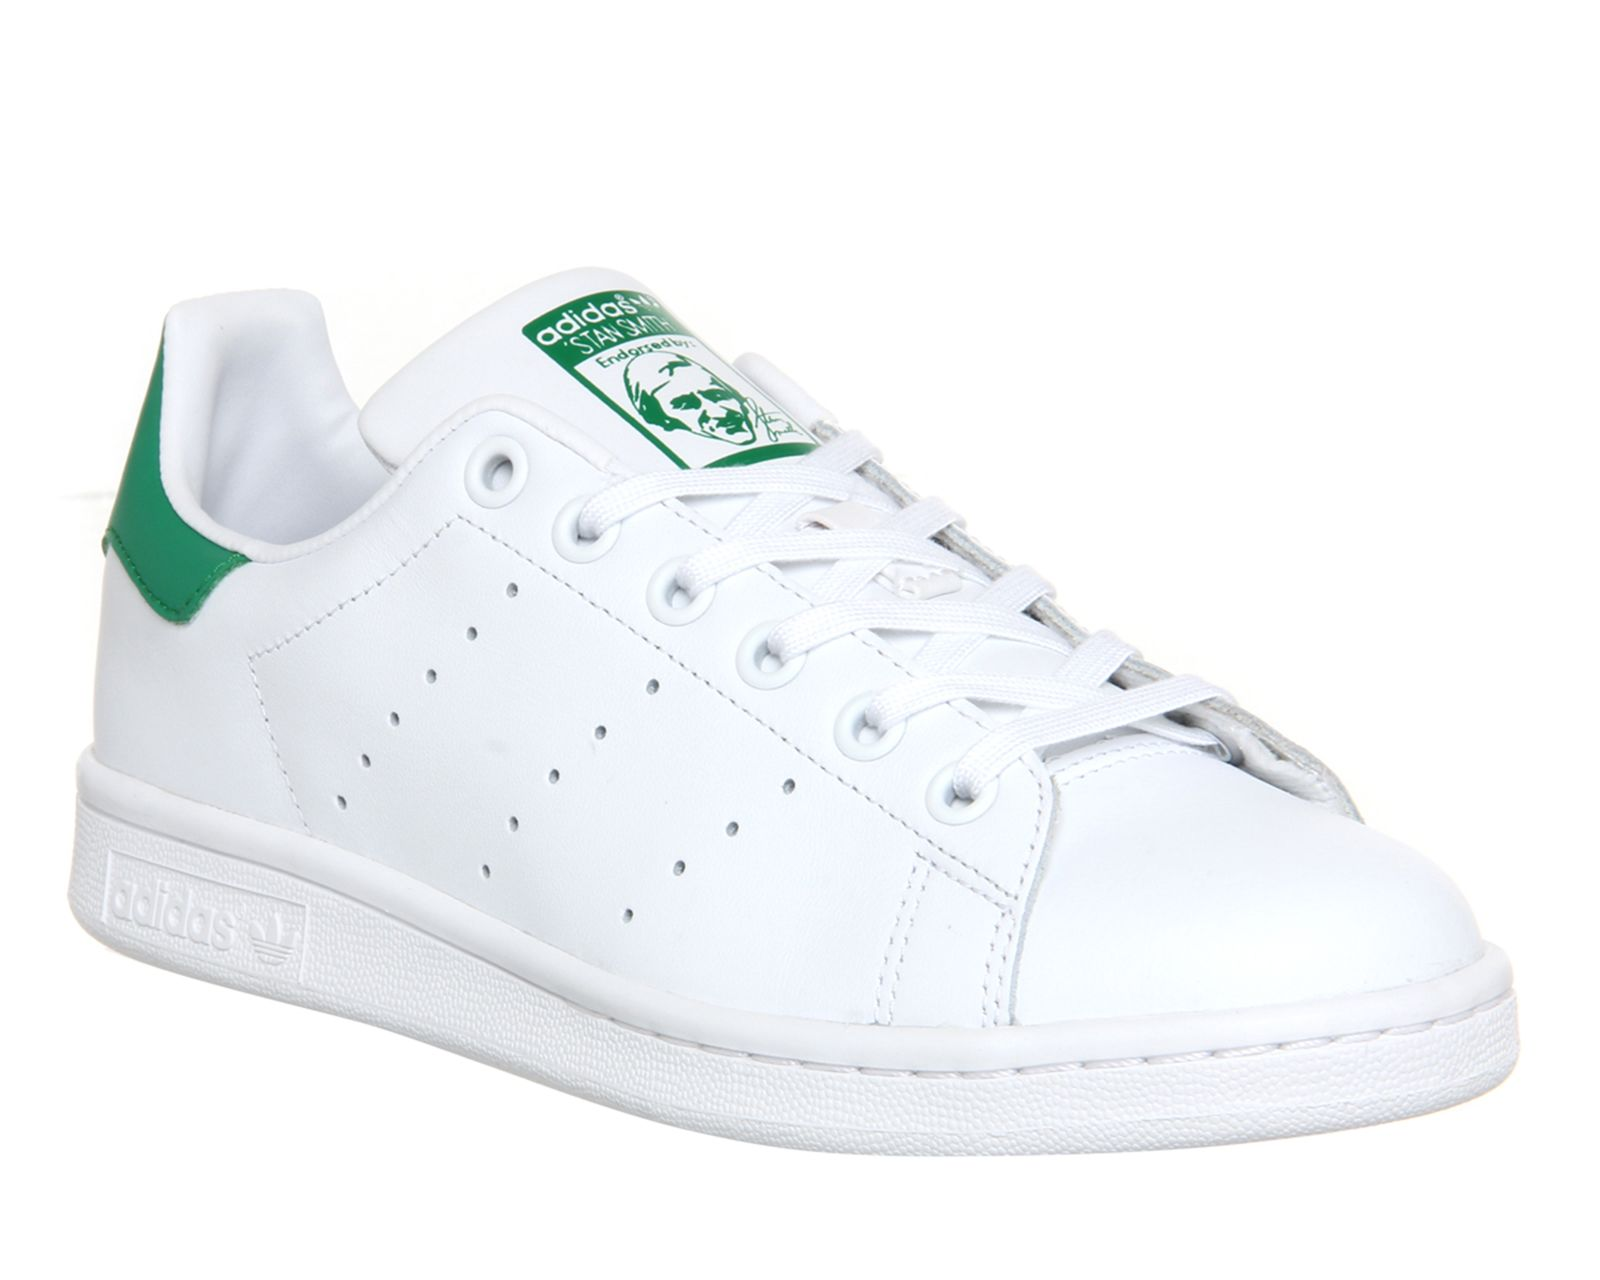 Adidas Originals Stan Smith Footwear White/Core White/Green sneakers unisex art.